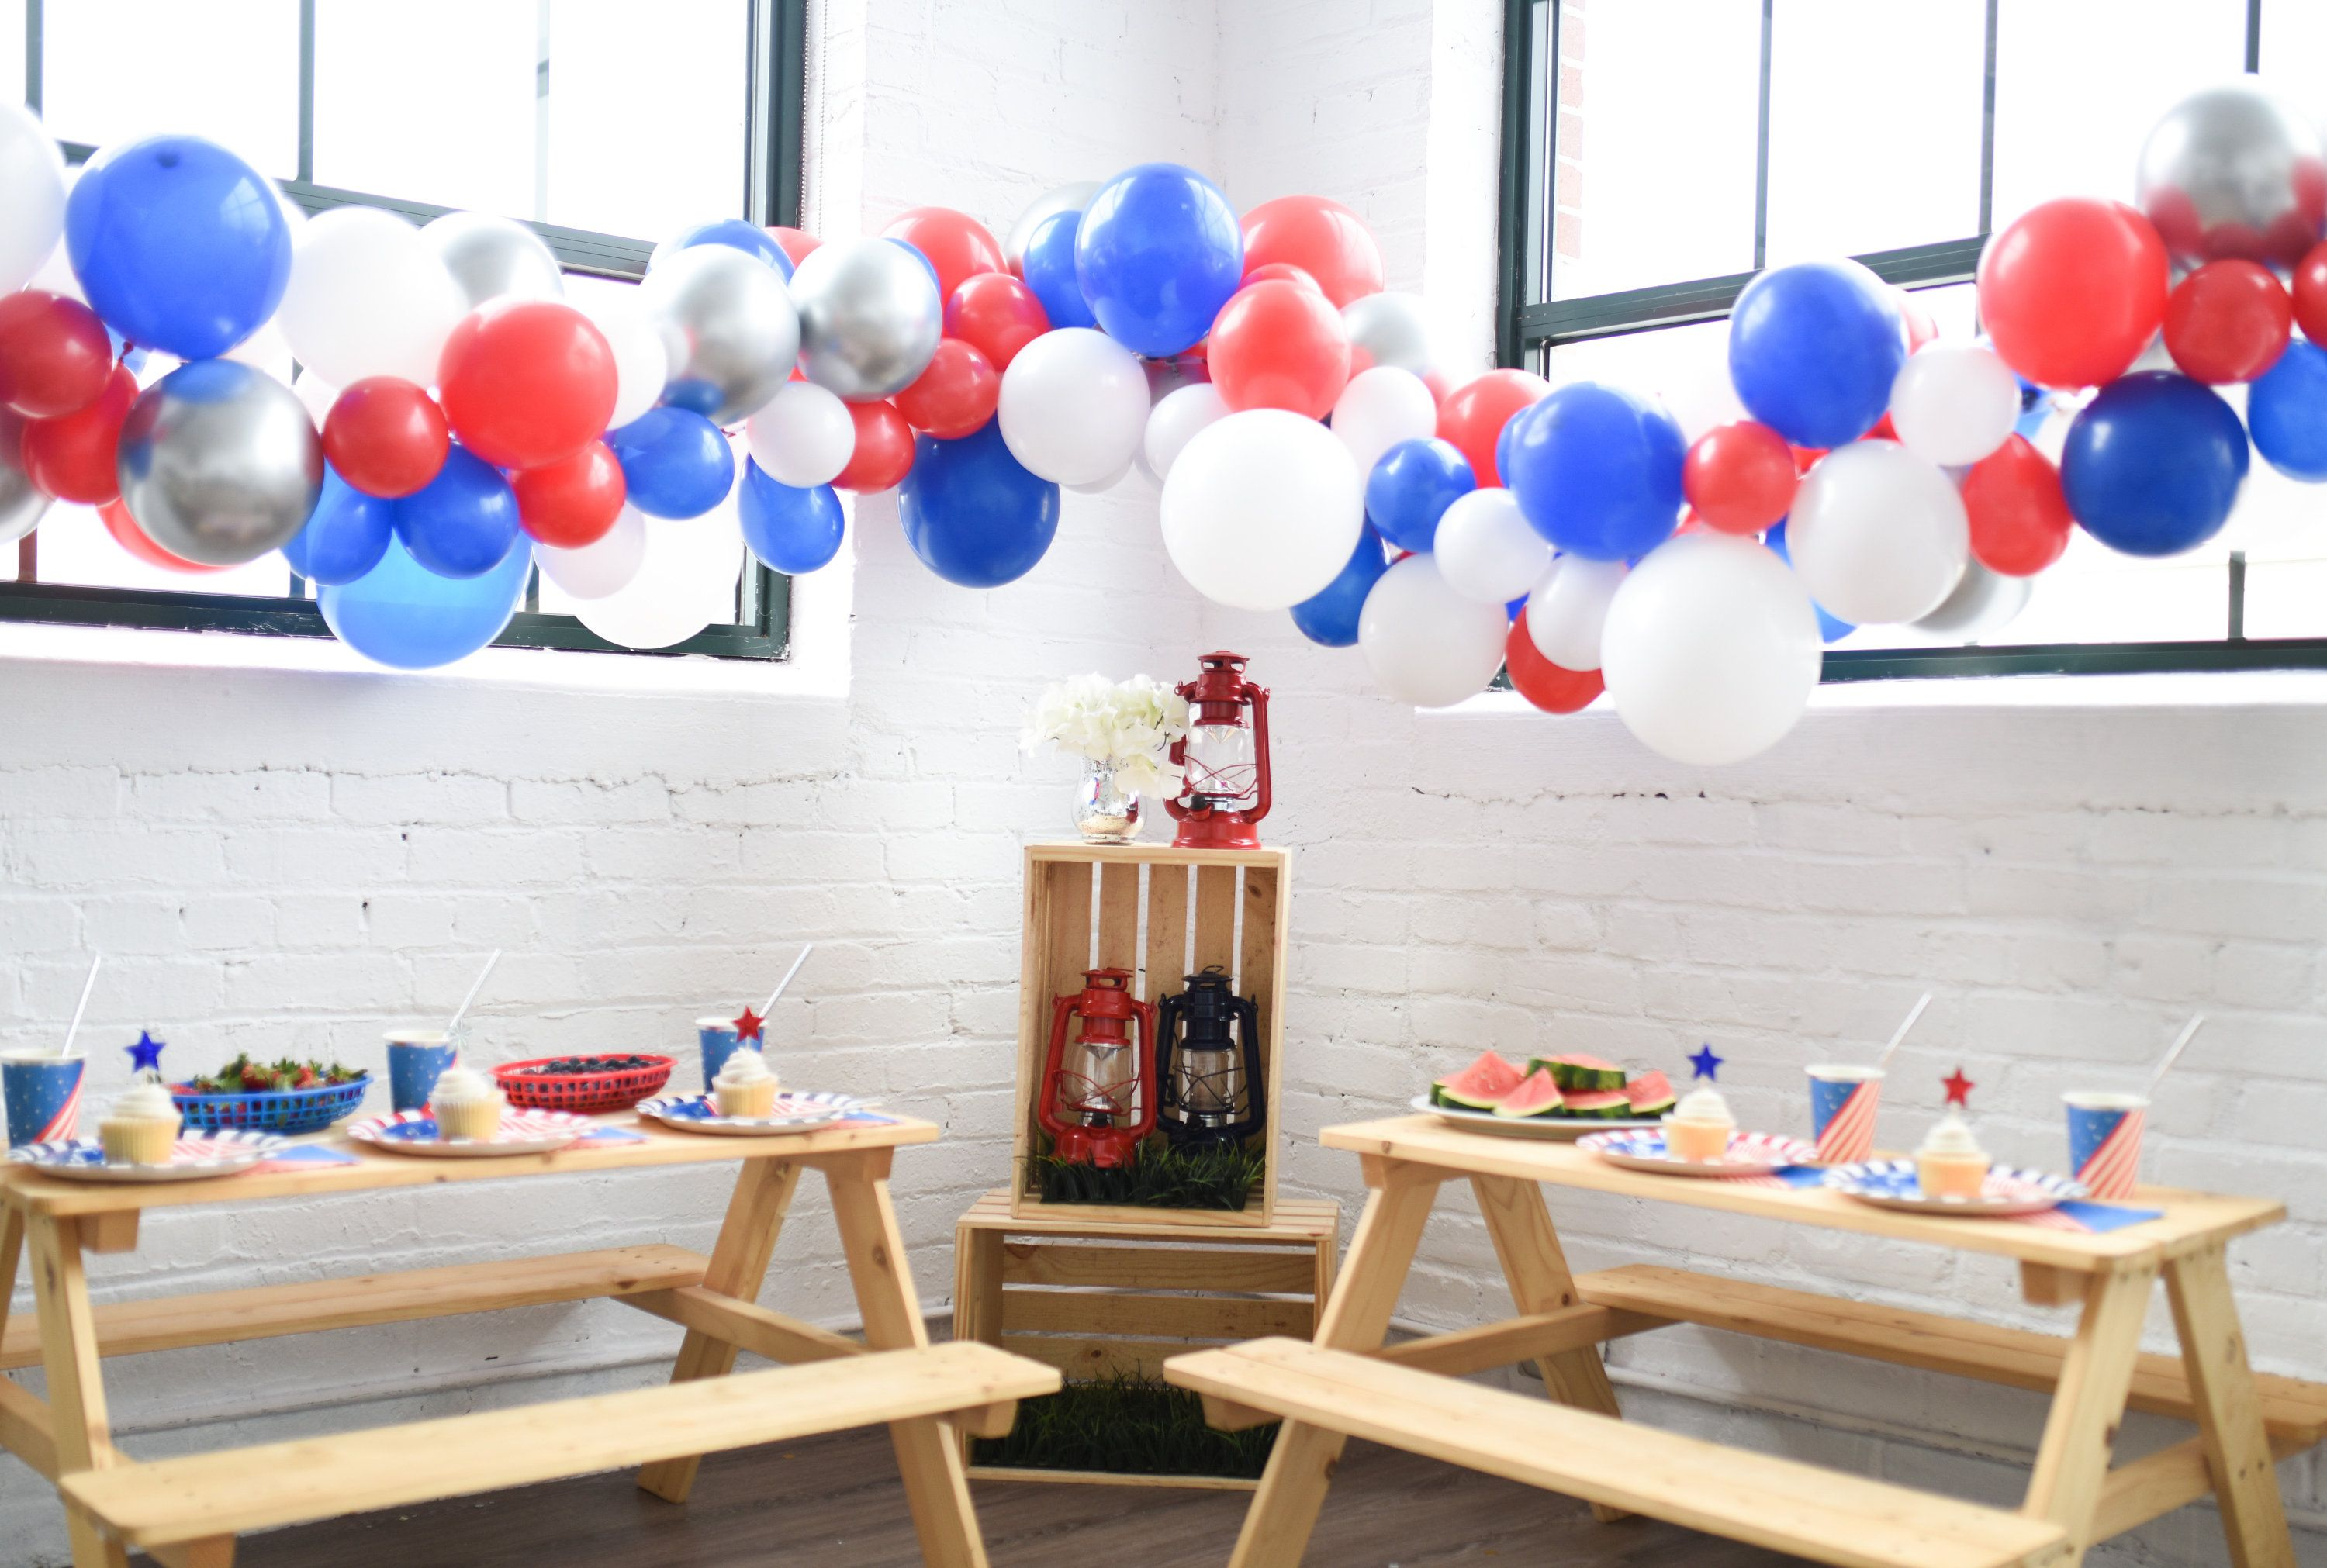 Patriotic Balloon Garland Pump Included! Create Your Own